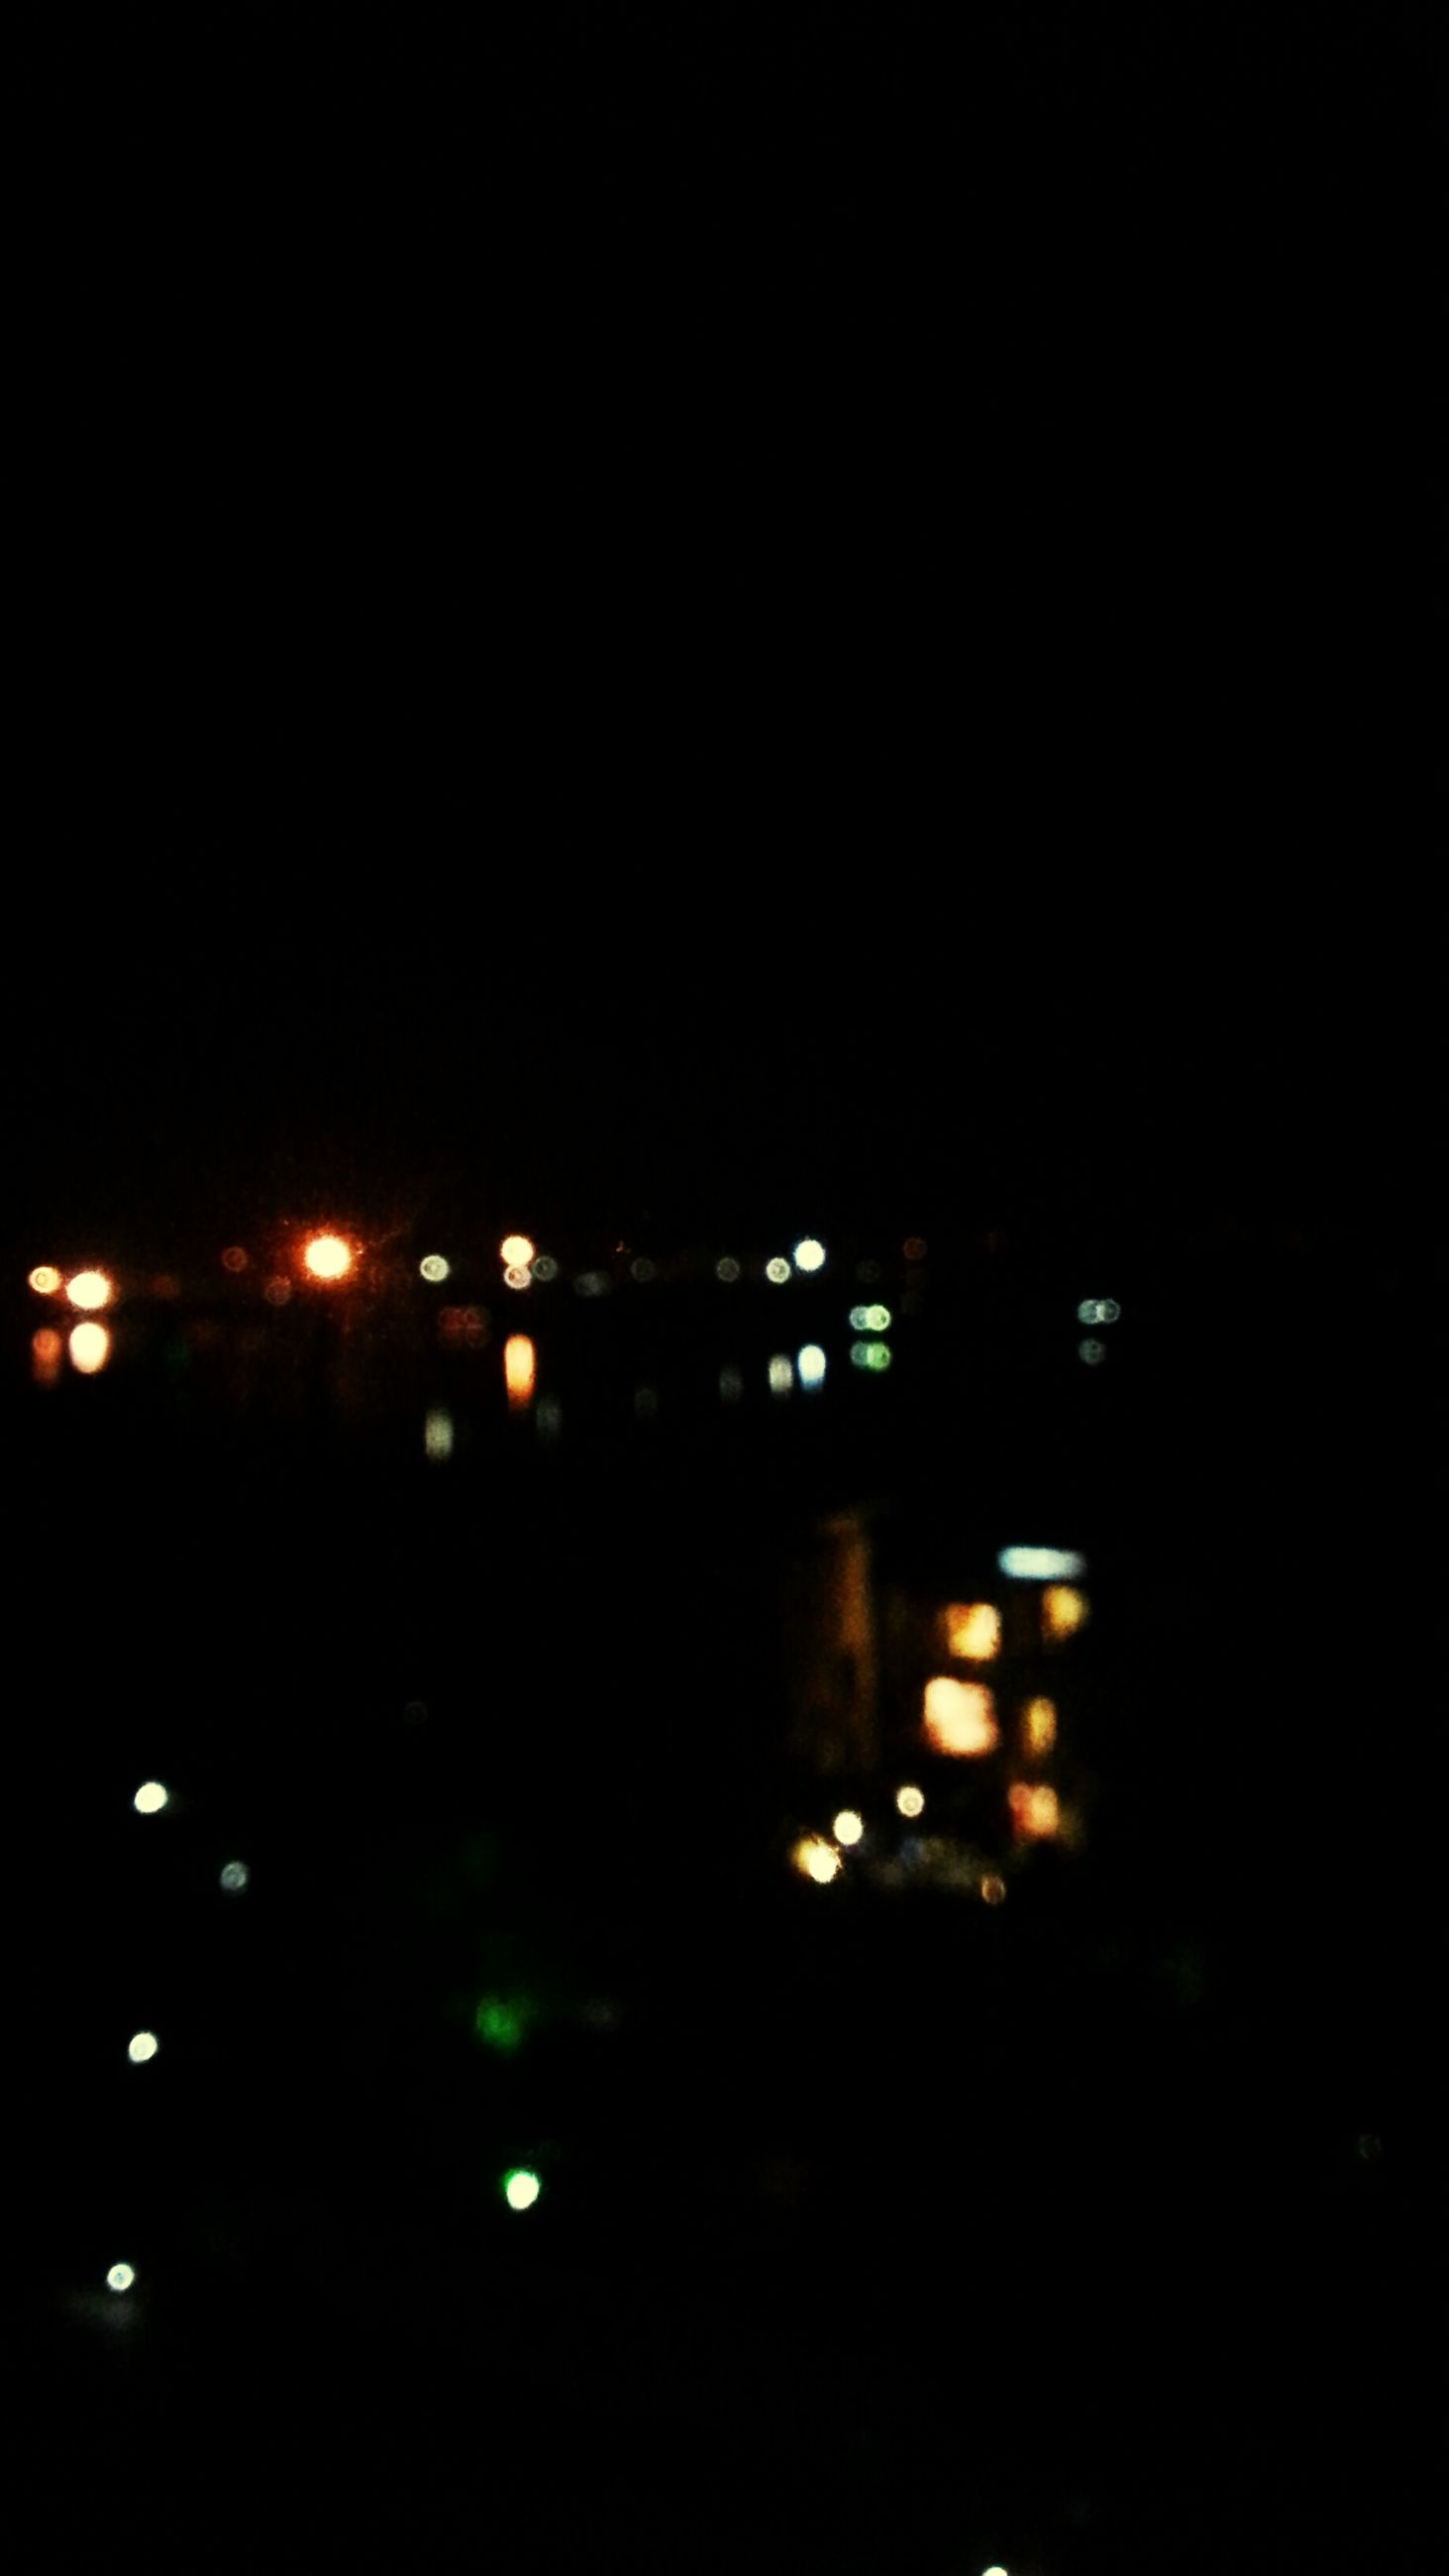 night, illuminated, building exterior, architecture, built structure, dark, city, copy space, lighting equipment, light - natural phenomenon, building, sky, clear sky, no people, outdoors, residential building, light, street light, residential structure, window